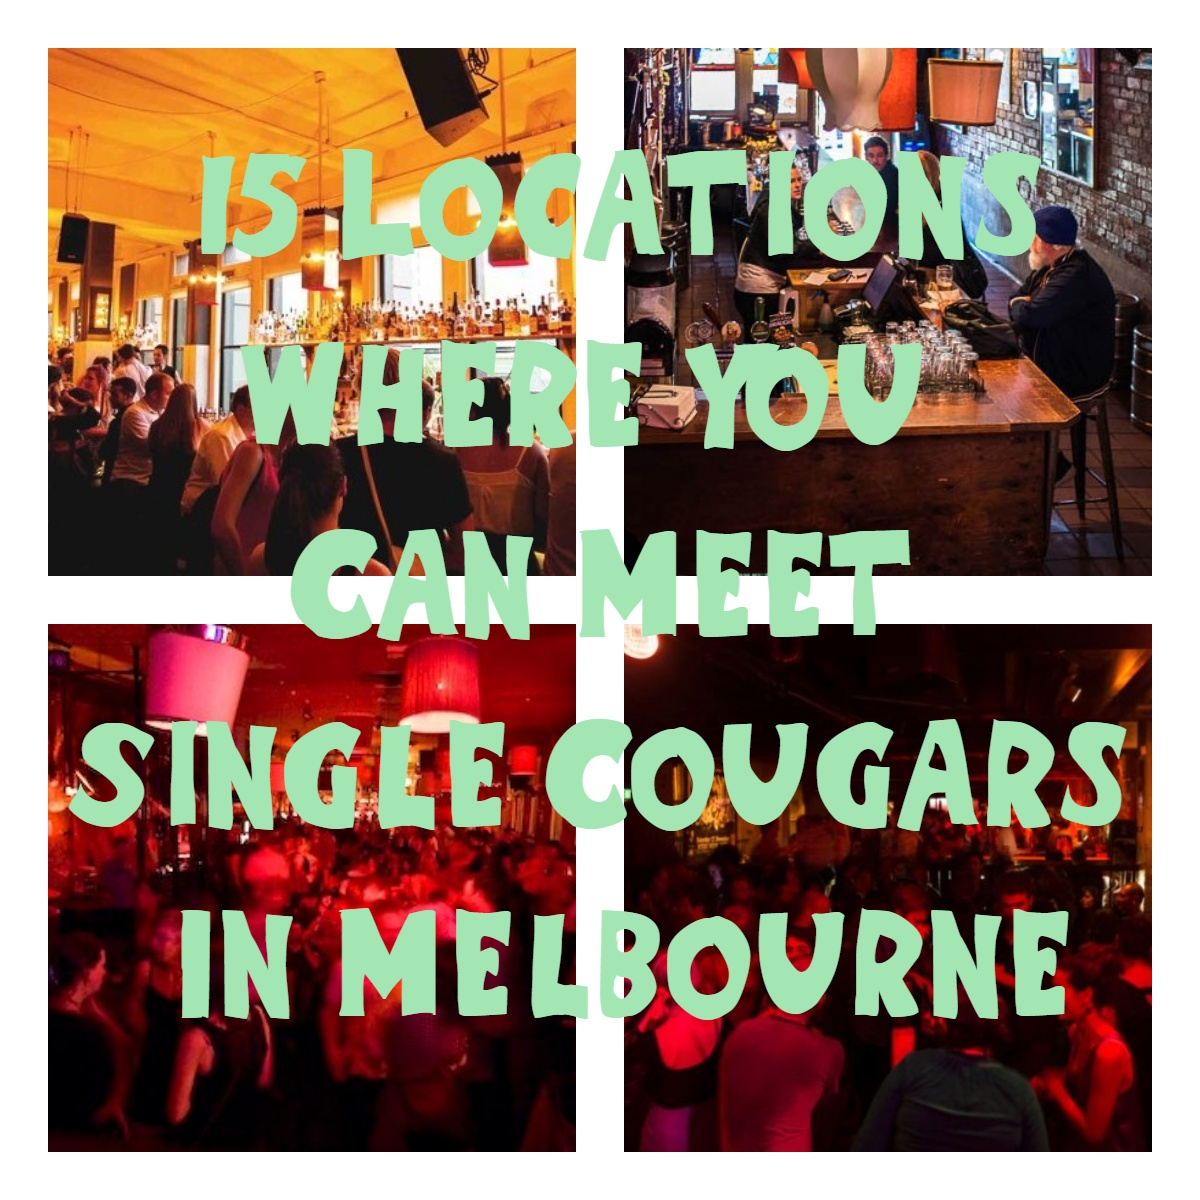 15 Locations Where You Can Meet Single Cougars In Melbourne